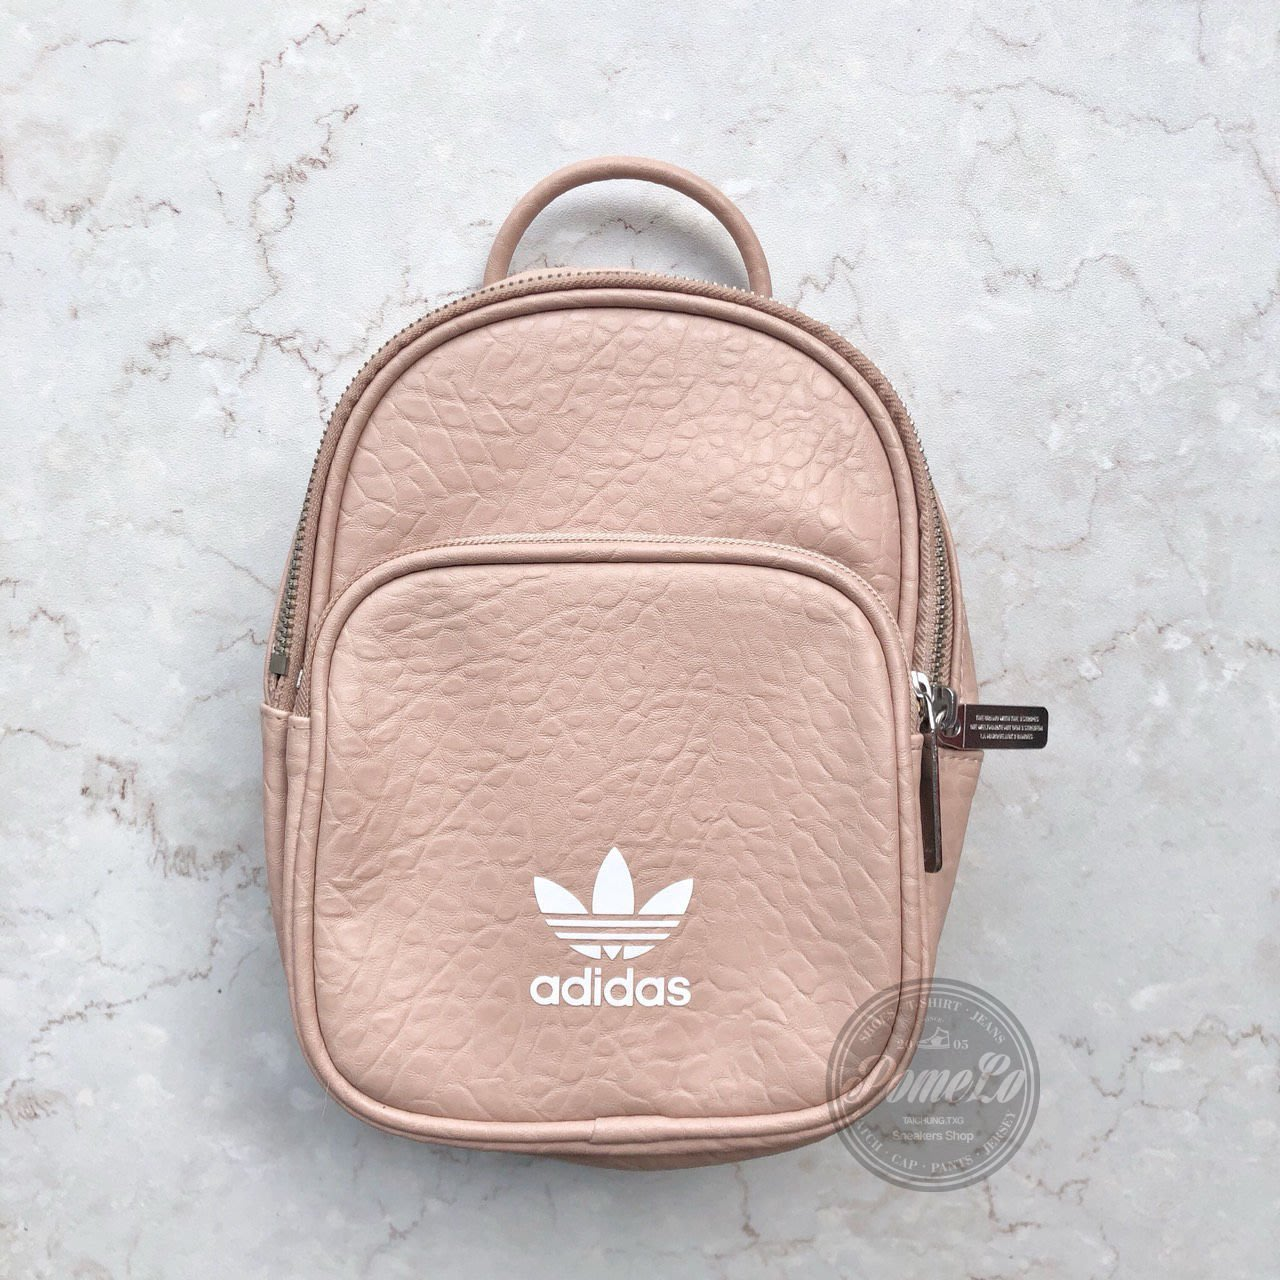 柚子的拍賣 ADIDAS Originals Classic Mini Backpack 粉色 後背小包 CF0060